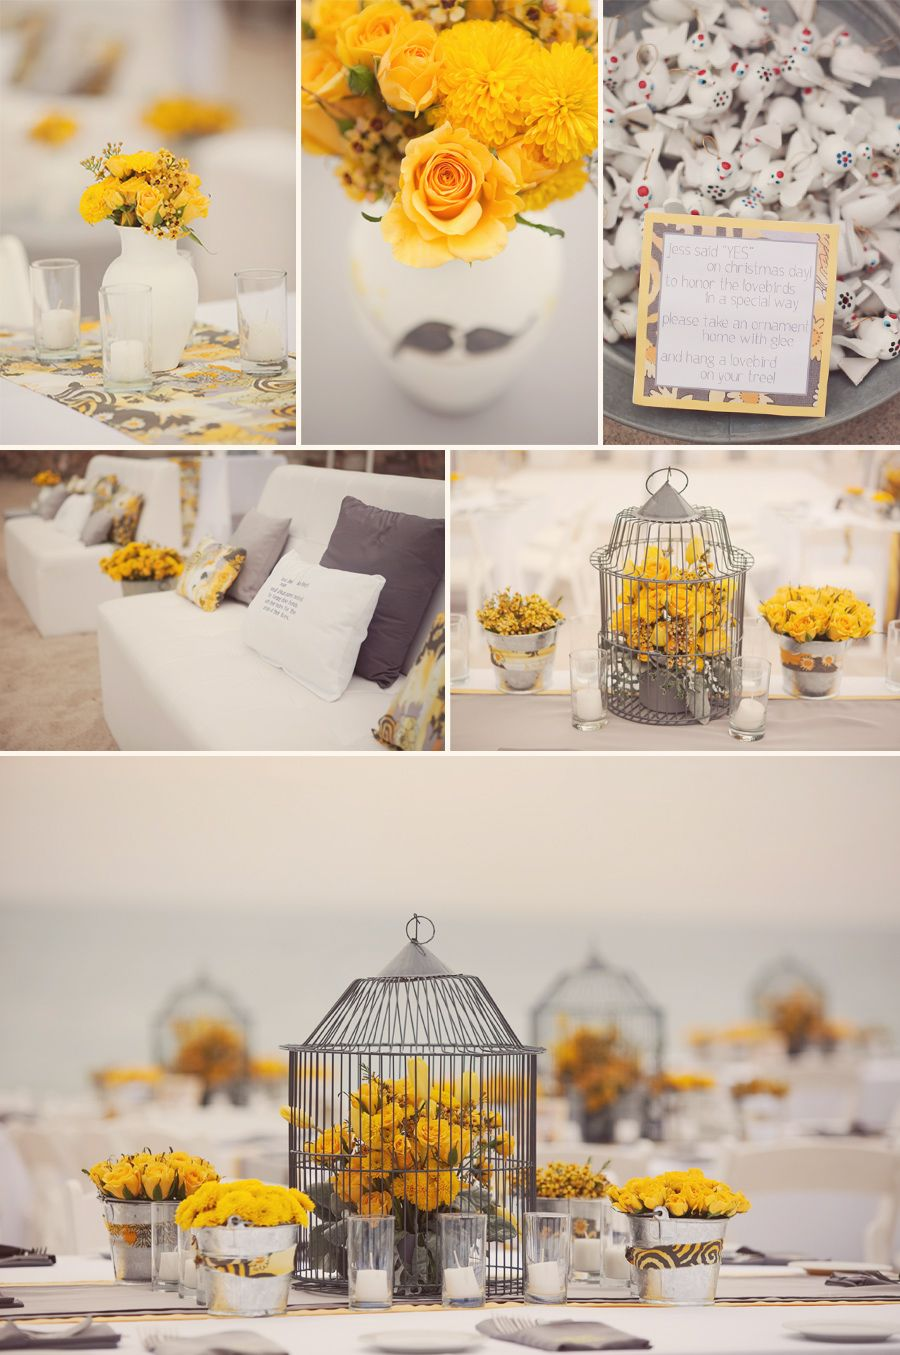 Wedding decorations yellow and gray  Gorgeous bright yellow table centres  Photography by Stephanie